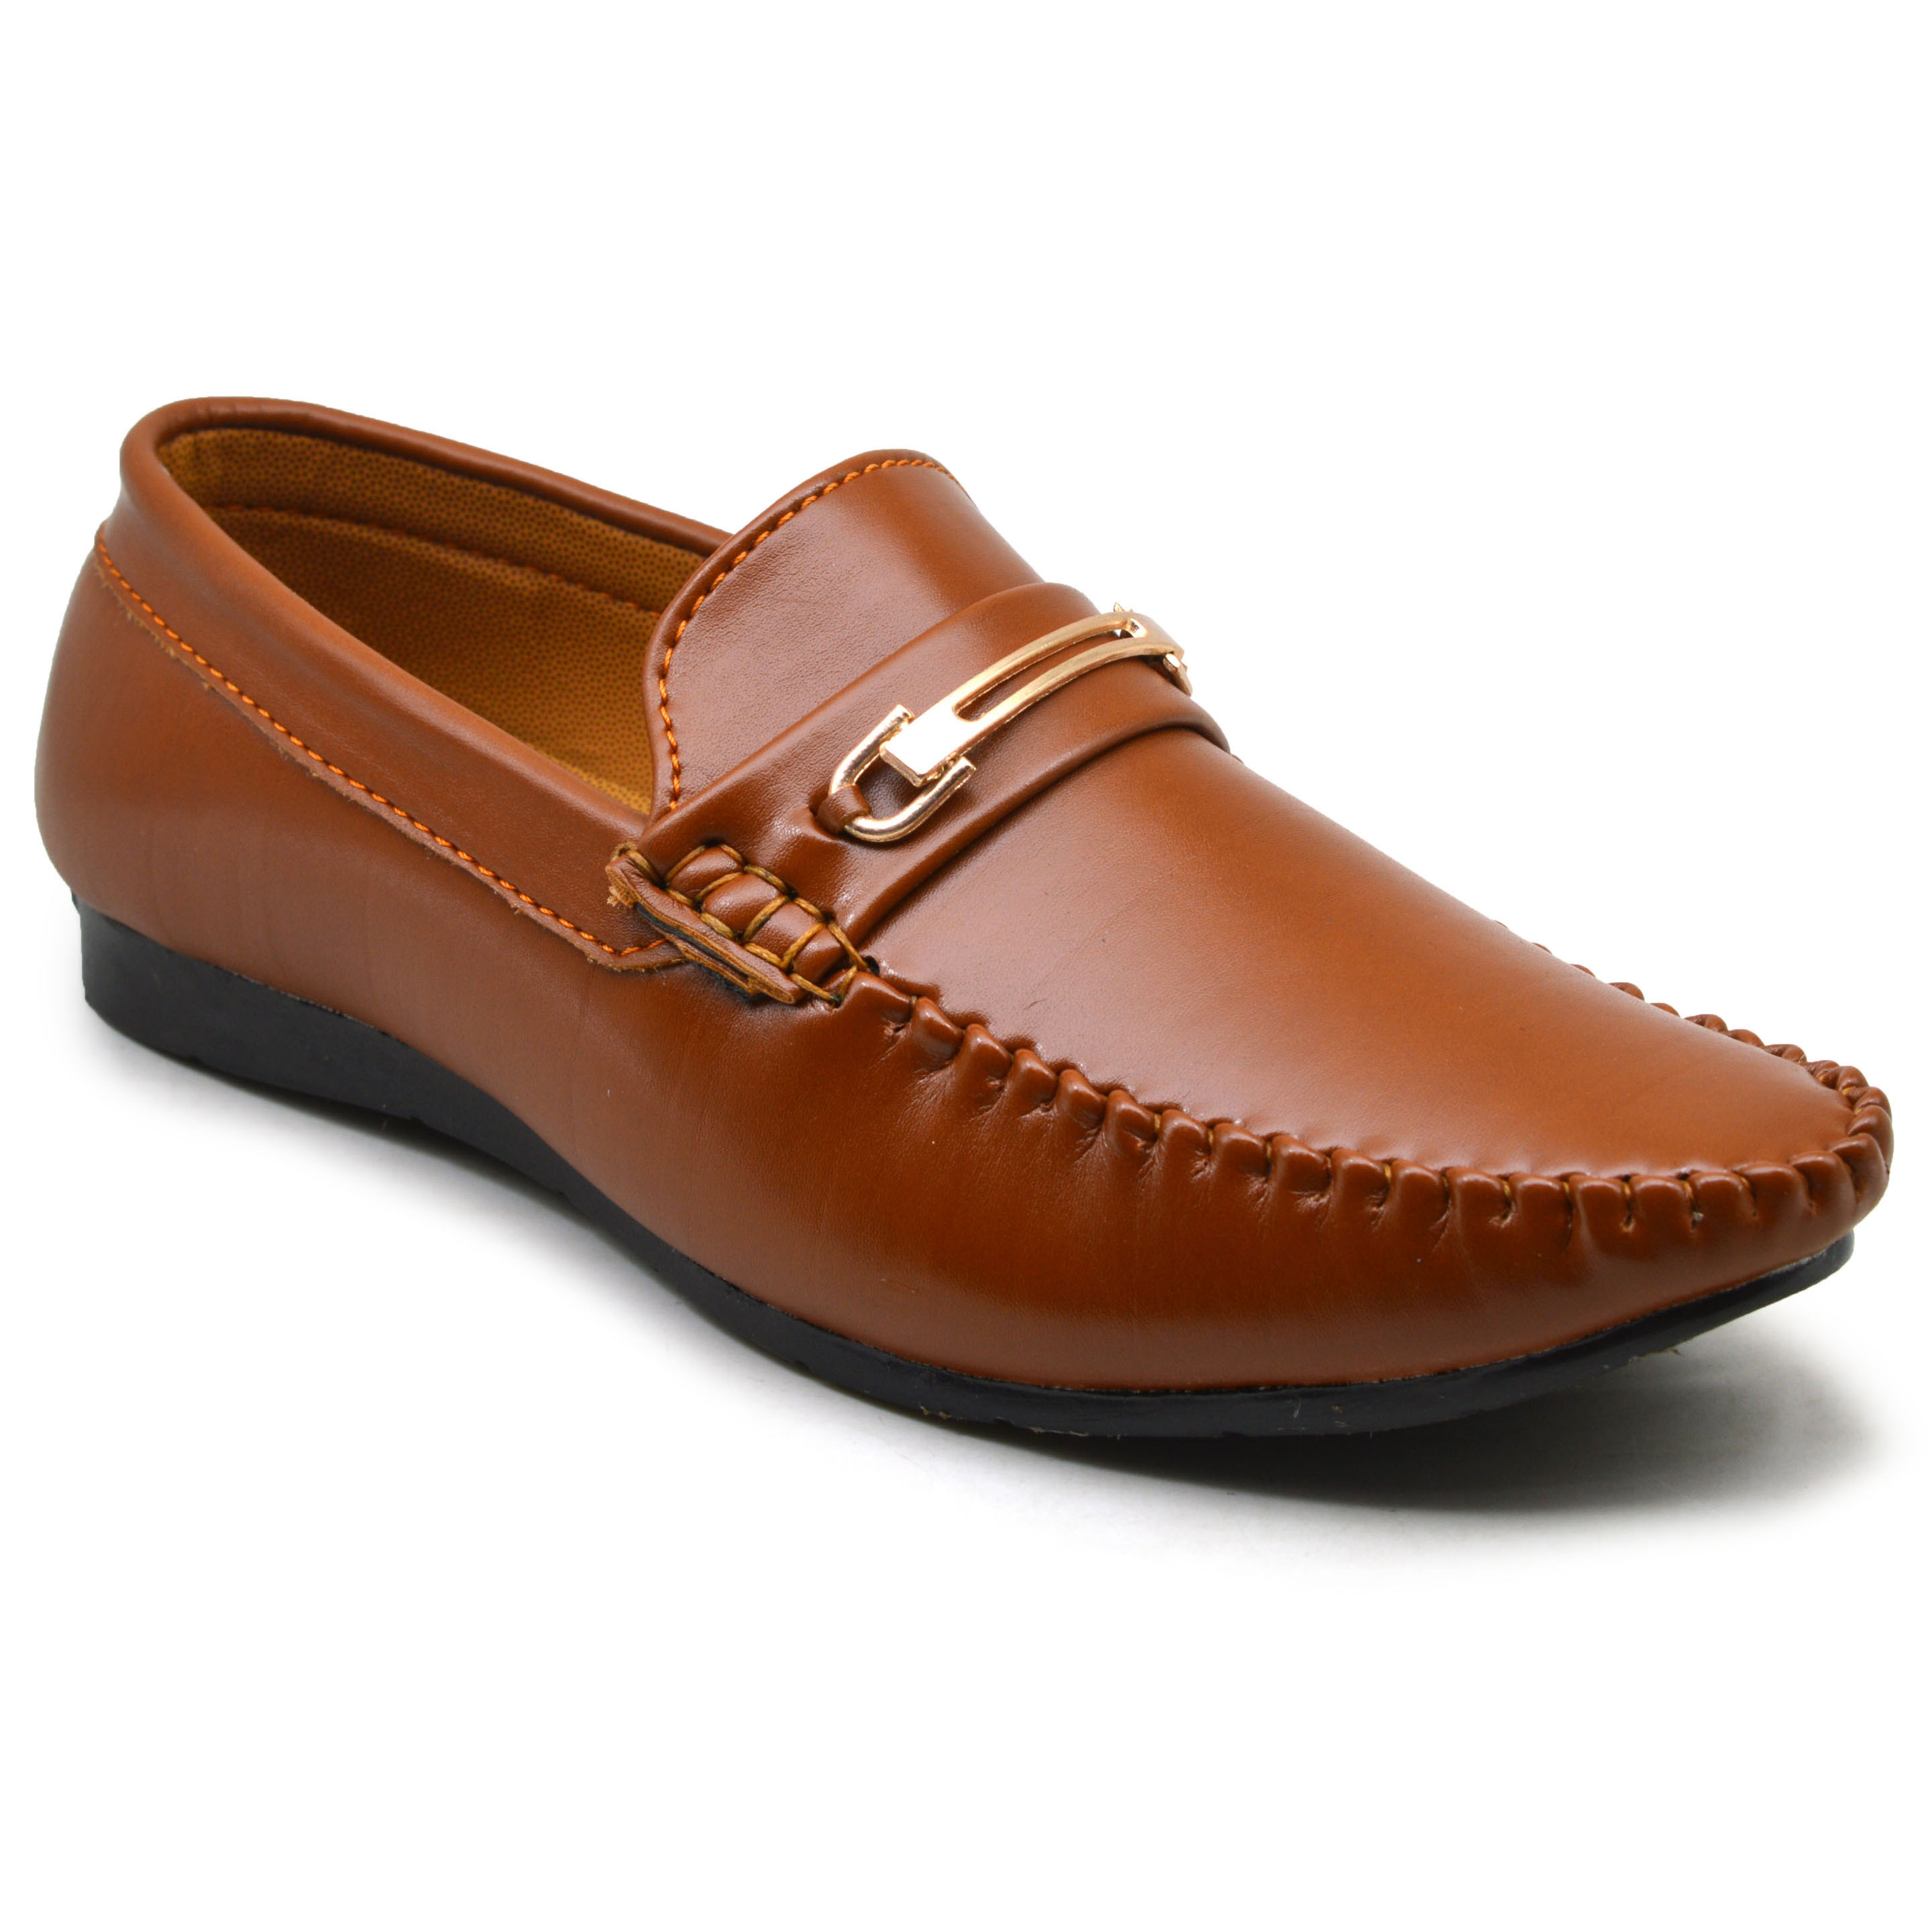 IMCOLUS407.708_BROWN PARTY & FANCY KIDS GOOD QUALITY LOAFER IMCOLUS407.708_BROWN (TAN, 7-10, 4 PAIR)